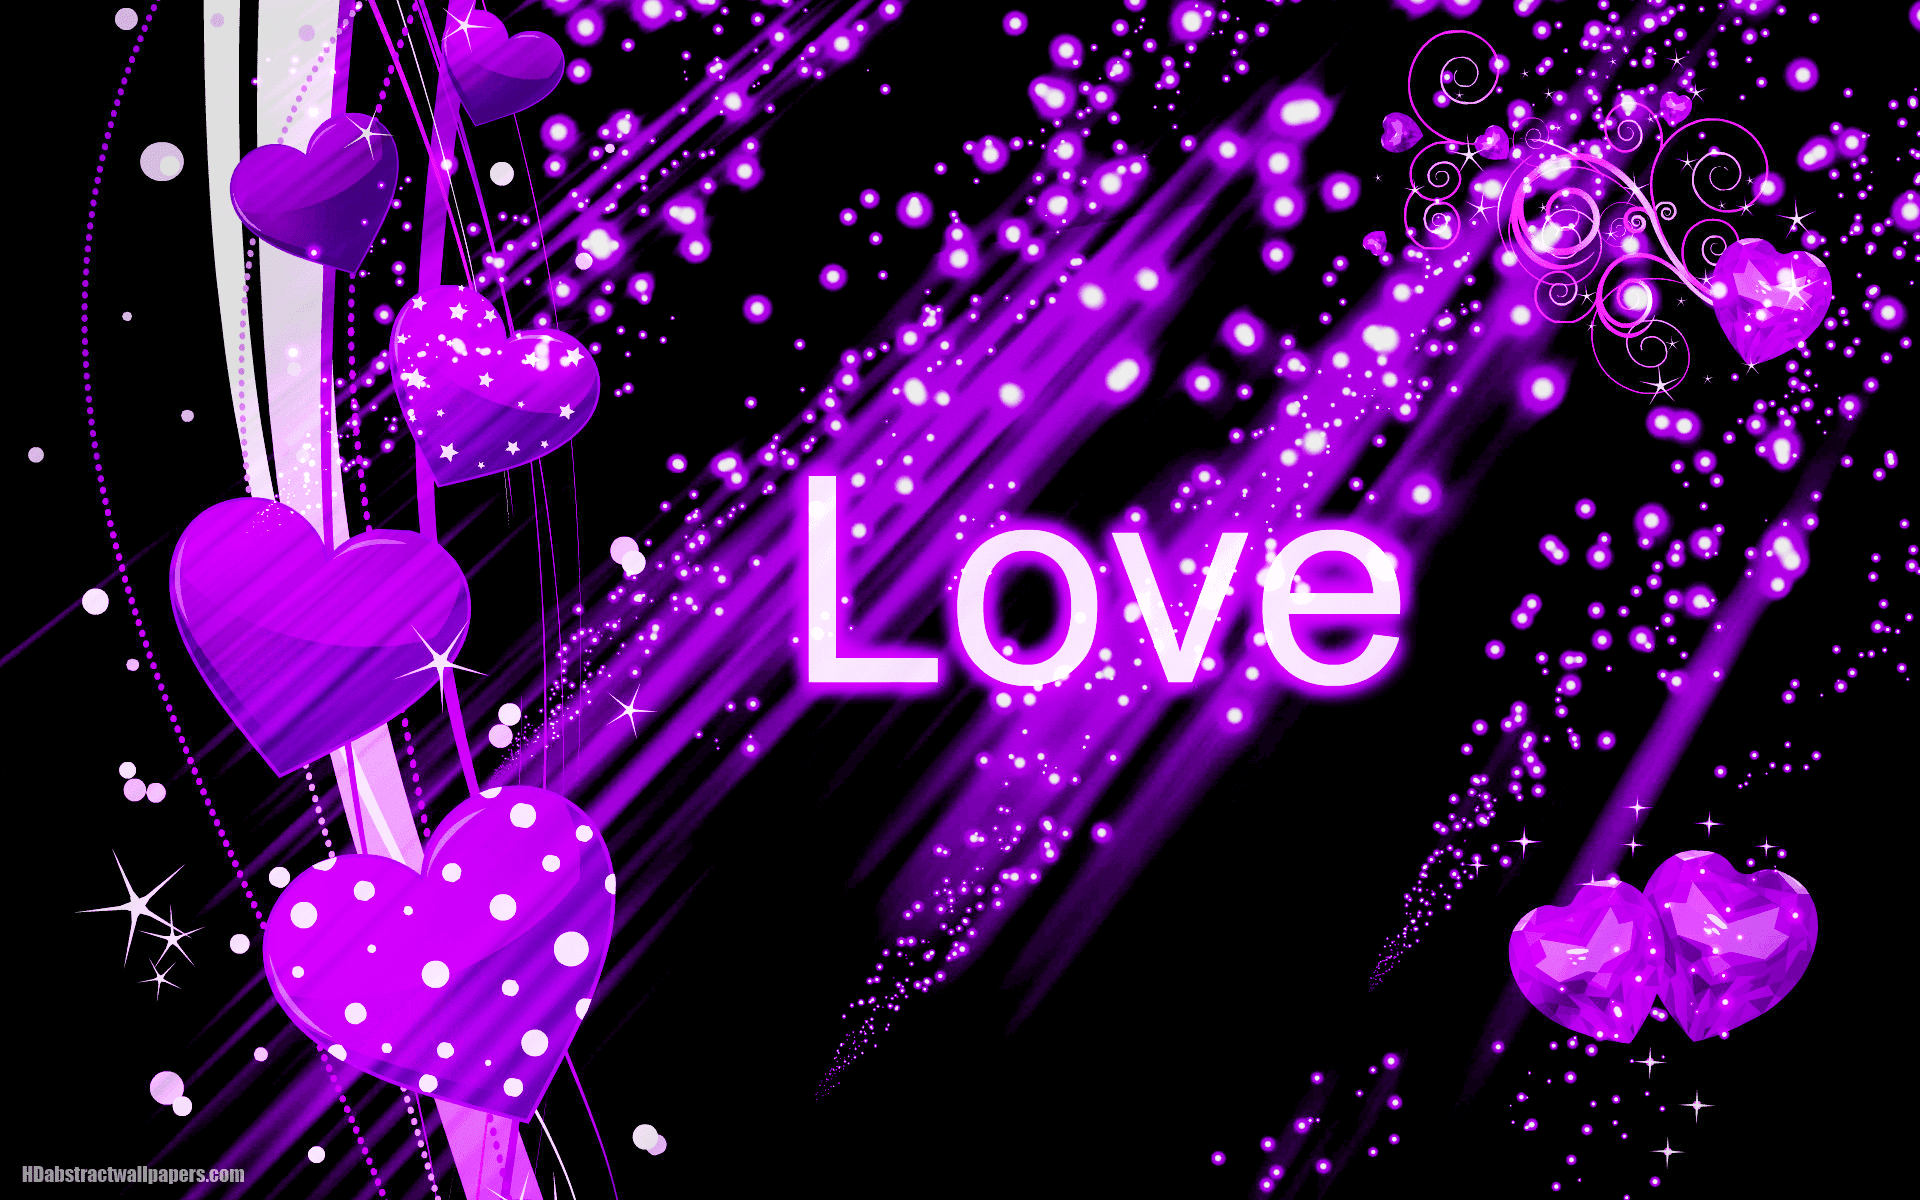 Love Wallpaper With Black Background : Black abstract wallpaper with purple love hearts HD Abstract Wallpapers